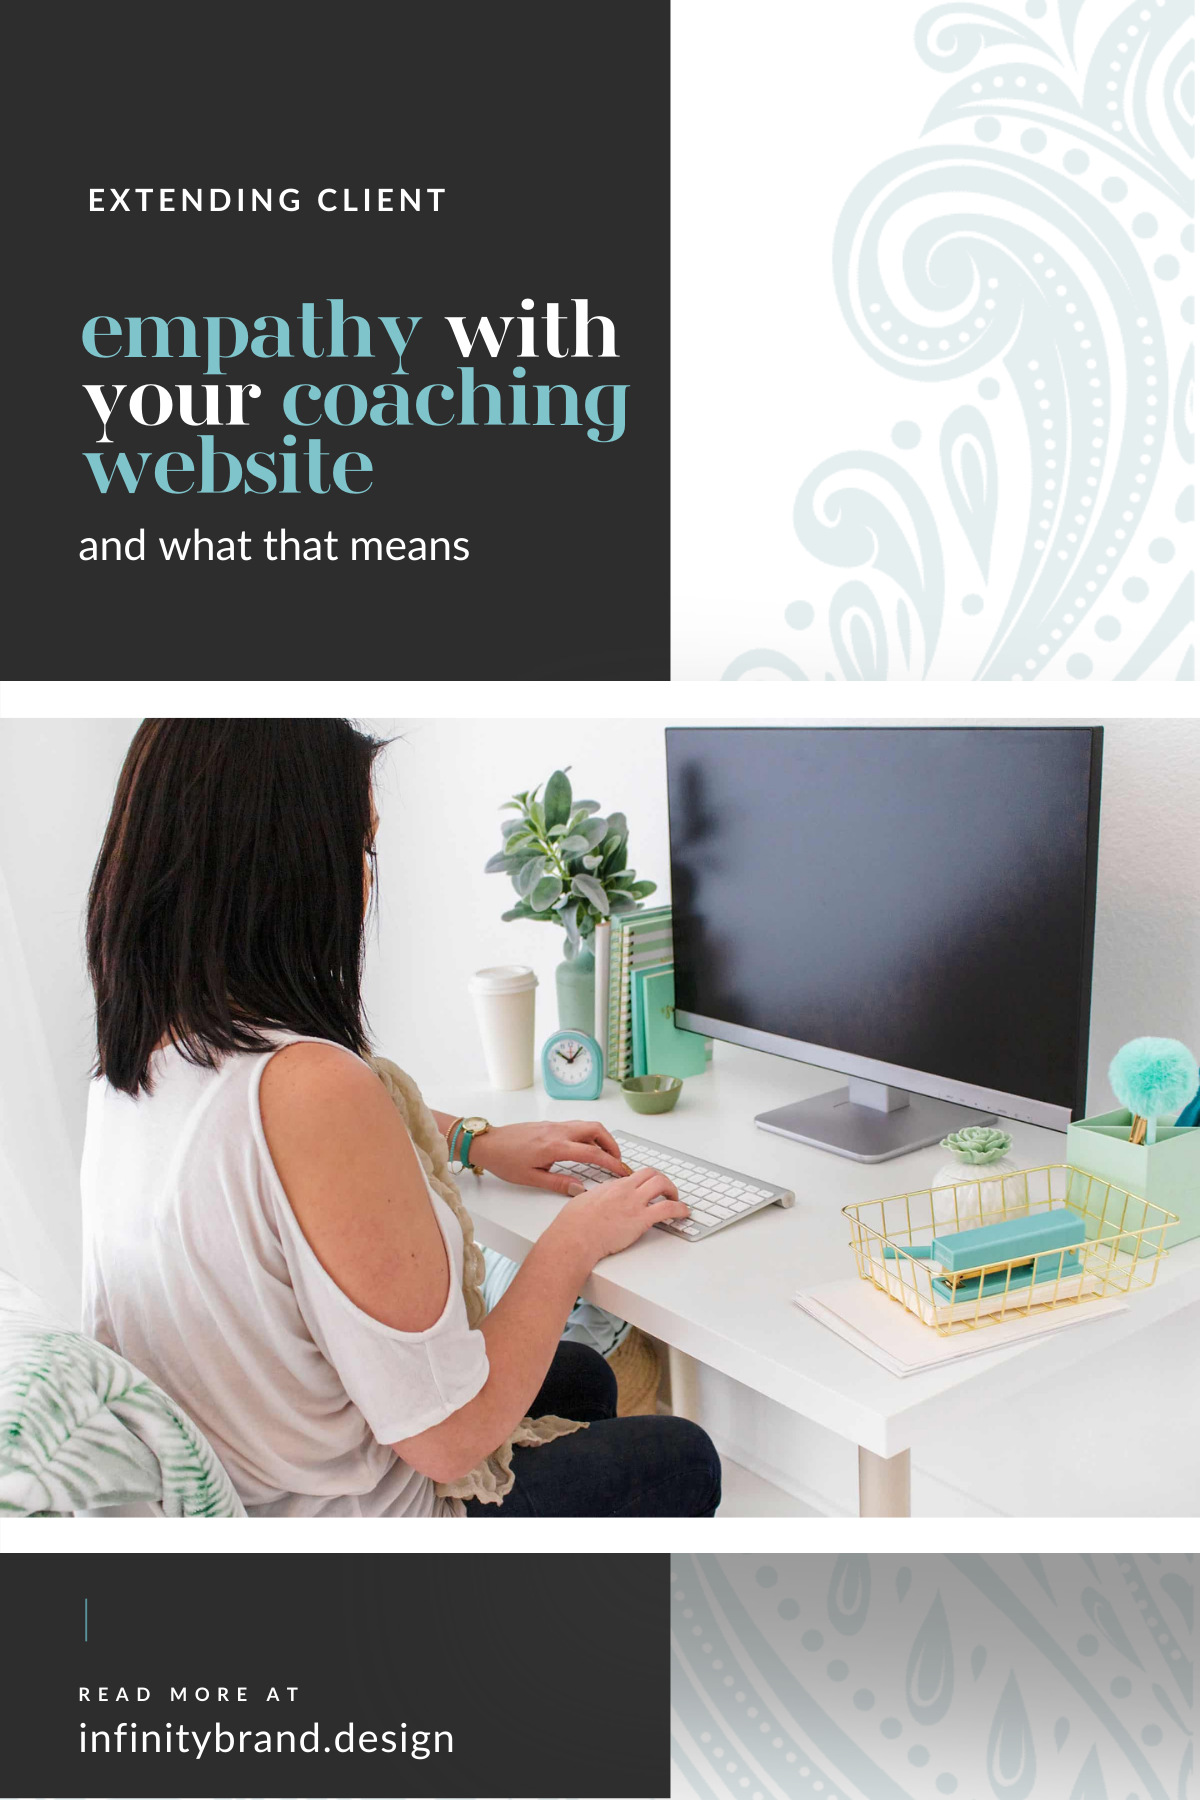 As a coach, you are a catalyst of change for your coaching clients, guiding them through positive transformations. Your methods likely include utilizing empathy to gain all kinds of insight into your client to help guide them toward their metamorphosis. But did you know that you can extend empathy for your clients even further into your brand and your website?